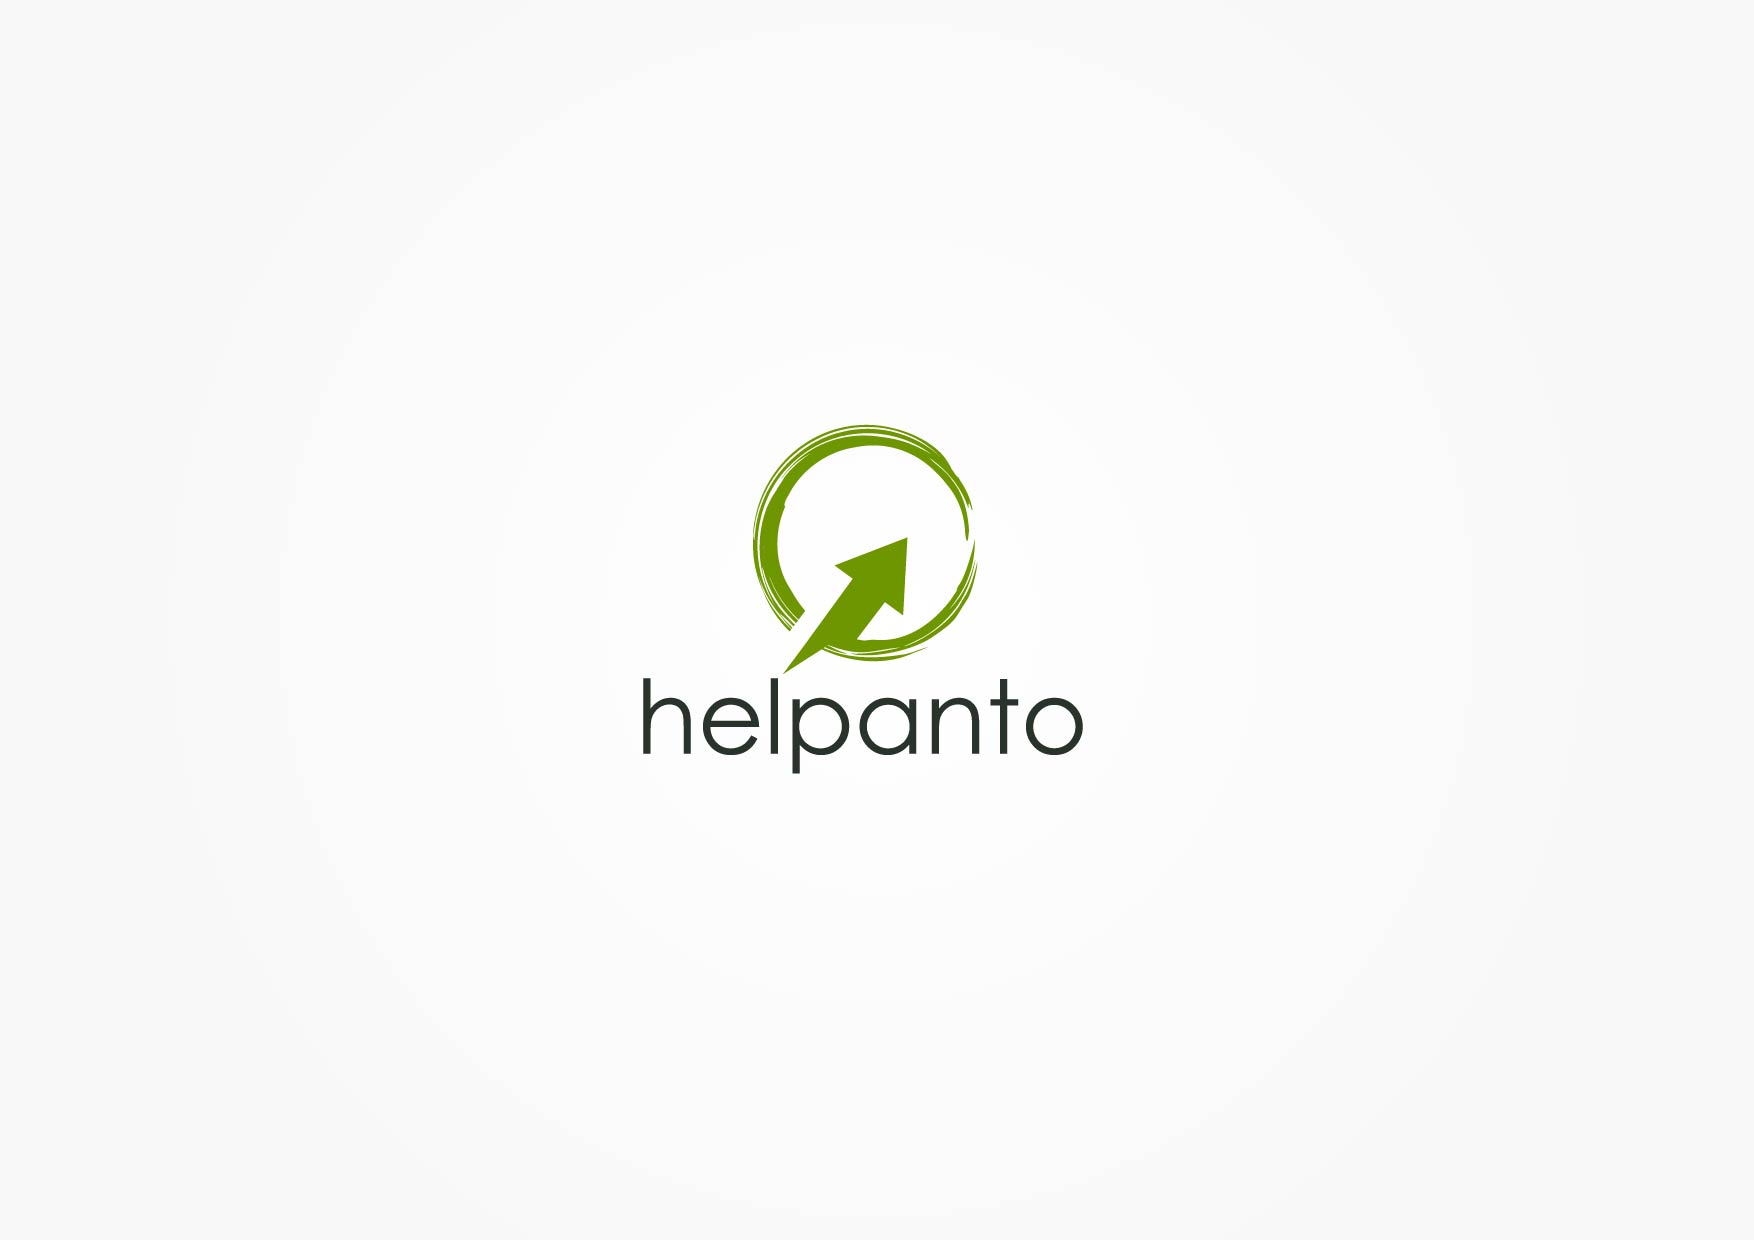 Logo Design by Osi Indra - Entry No. 88 in the Logo Design Contest Artistic Logo Design for helpanto.